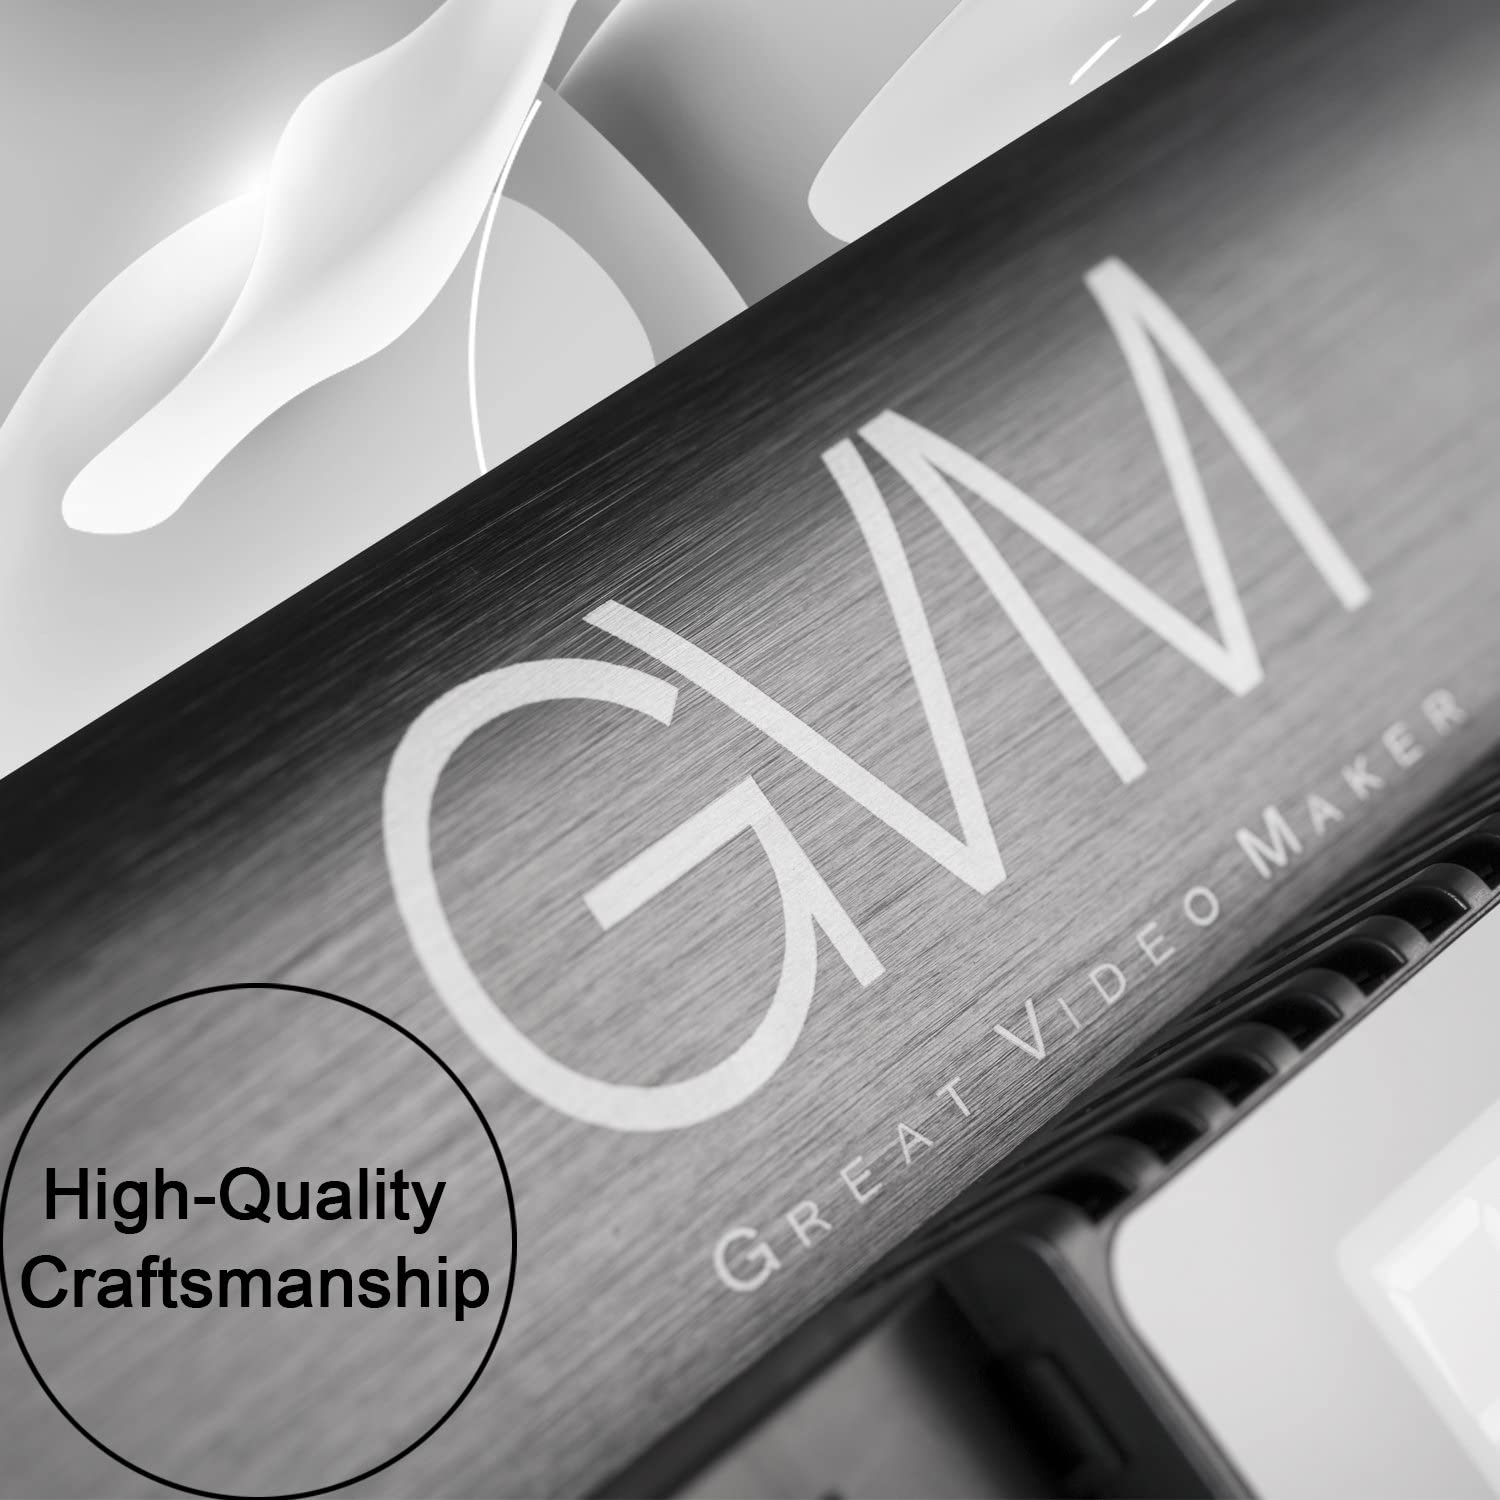 GVM Dimmable Bi-color LED Video Panel Light 2300~6800K For Studio Interview CRI97 Brightness of 10~100/% Metal Housing Outdoor Video Photography Lighting Kit 29W 480LS